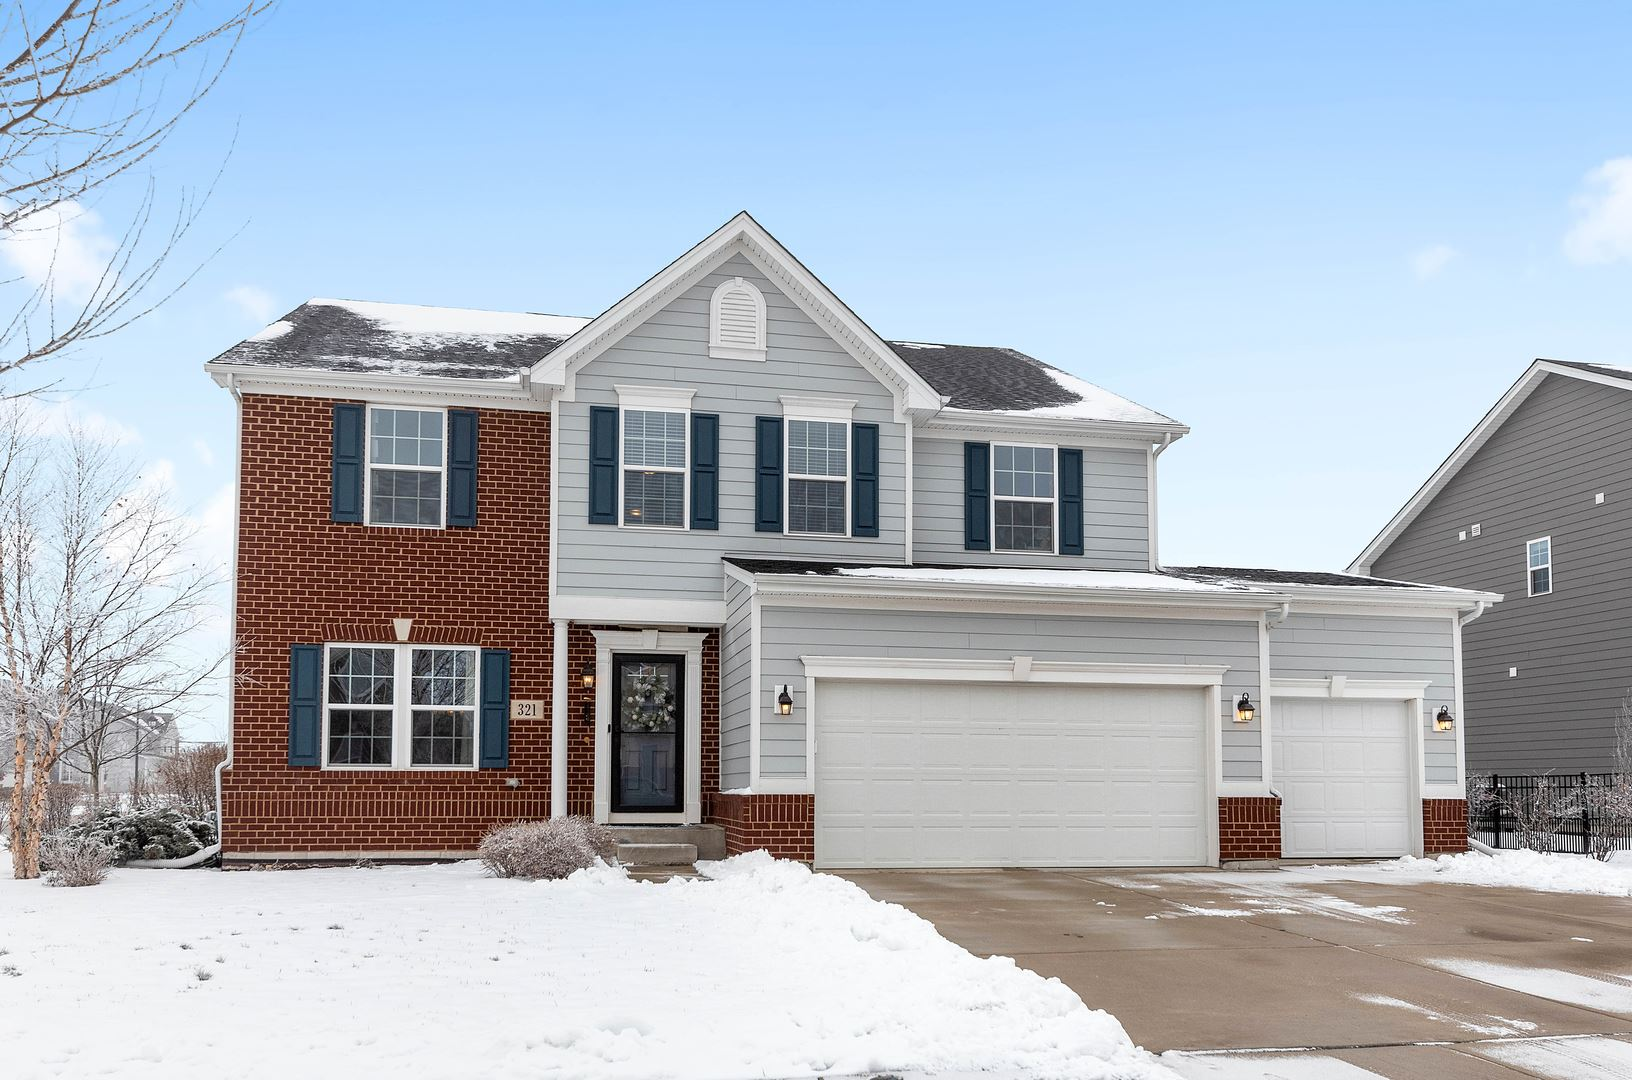 Photo of 321 Brannon Court, Shorewood, IL 60404 (MLS # 10964769)